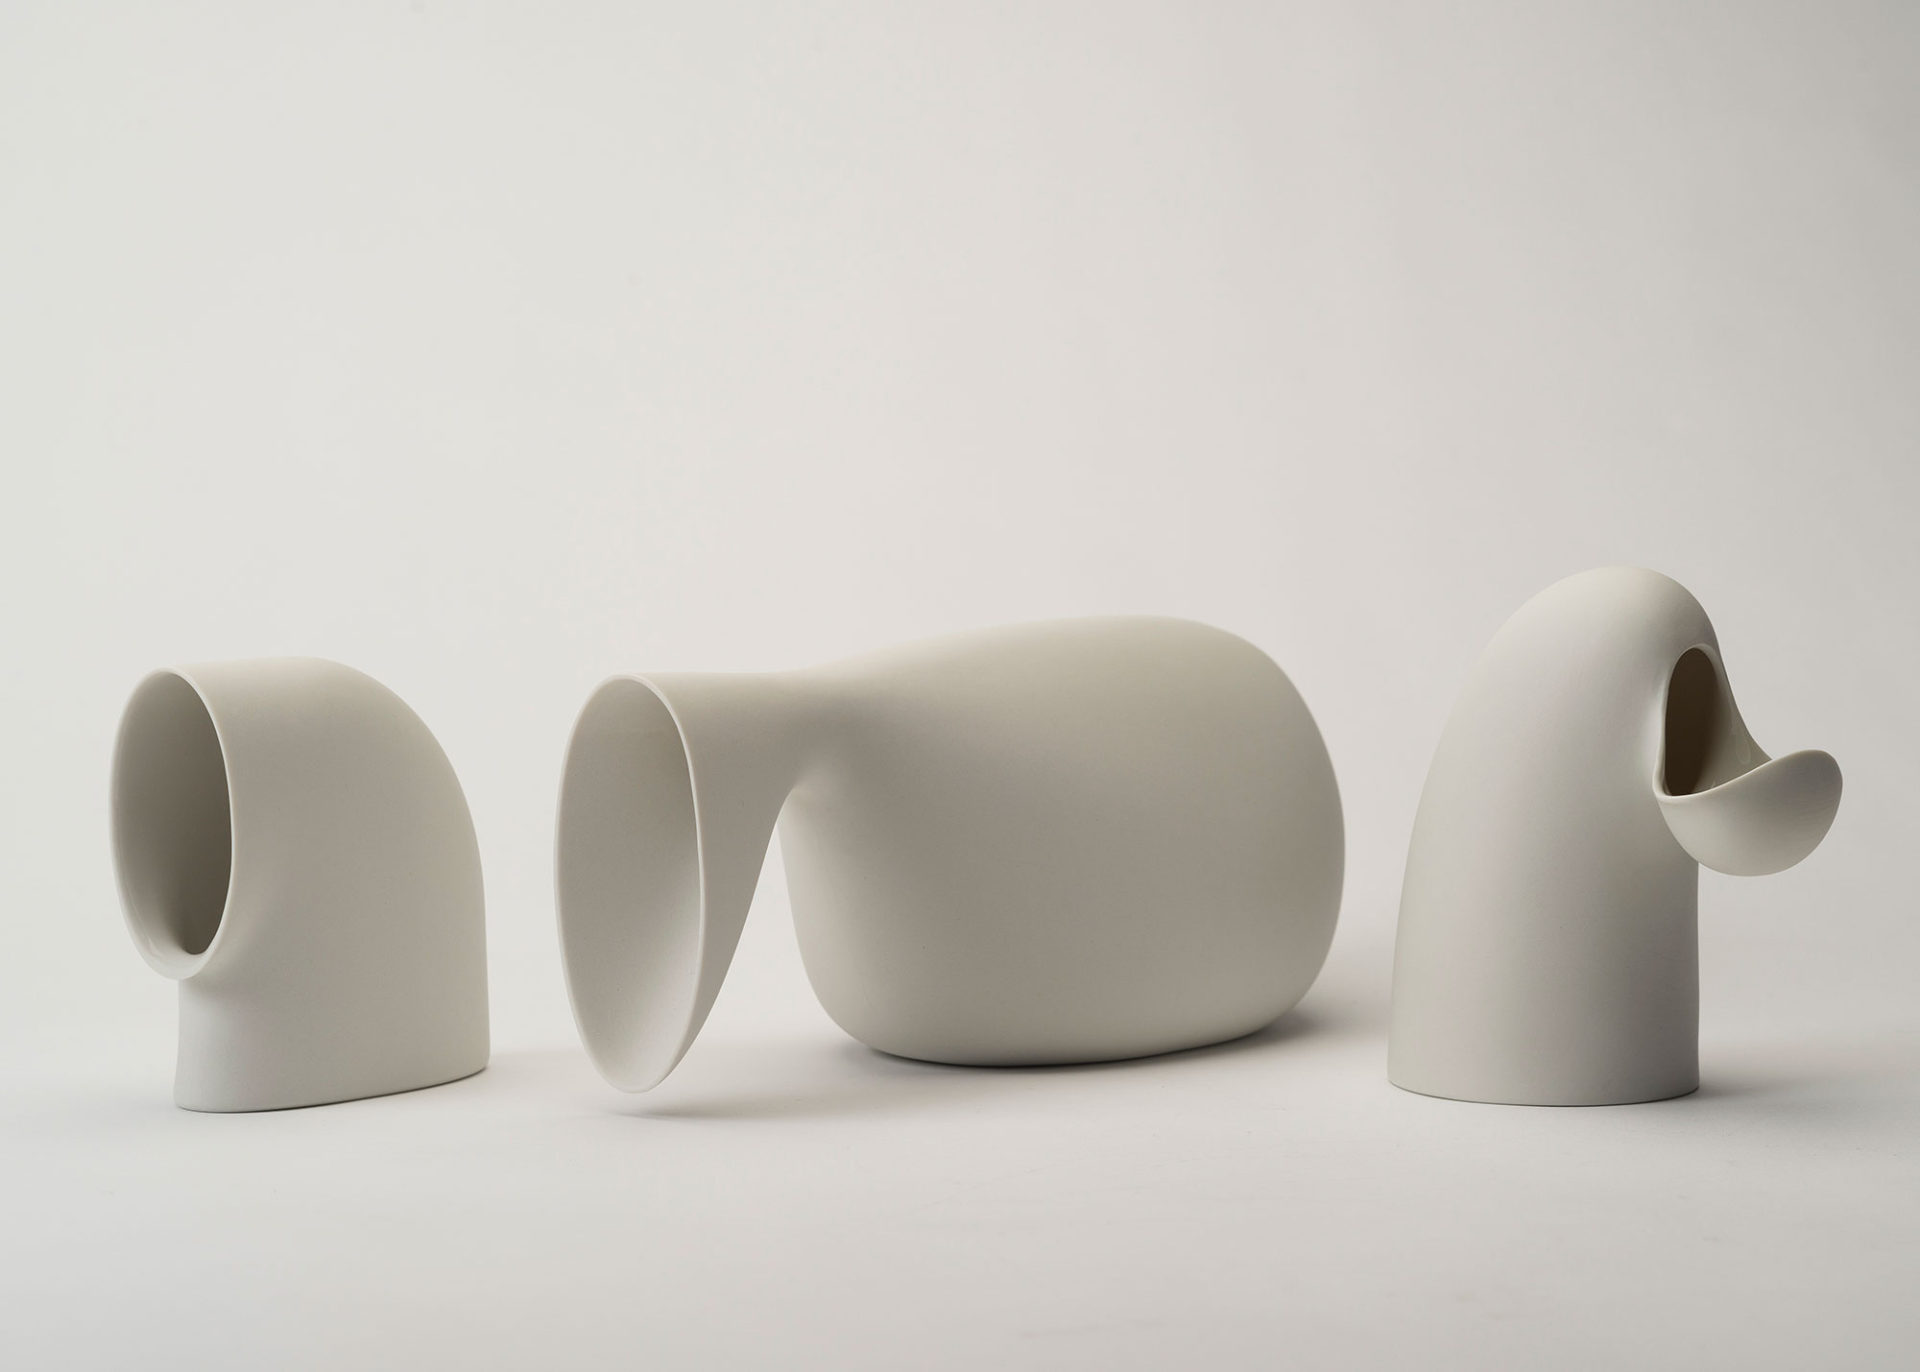 Three vessels in surprising, curving shapes, made of matte white porcelain.